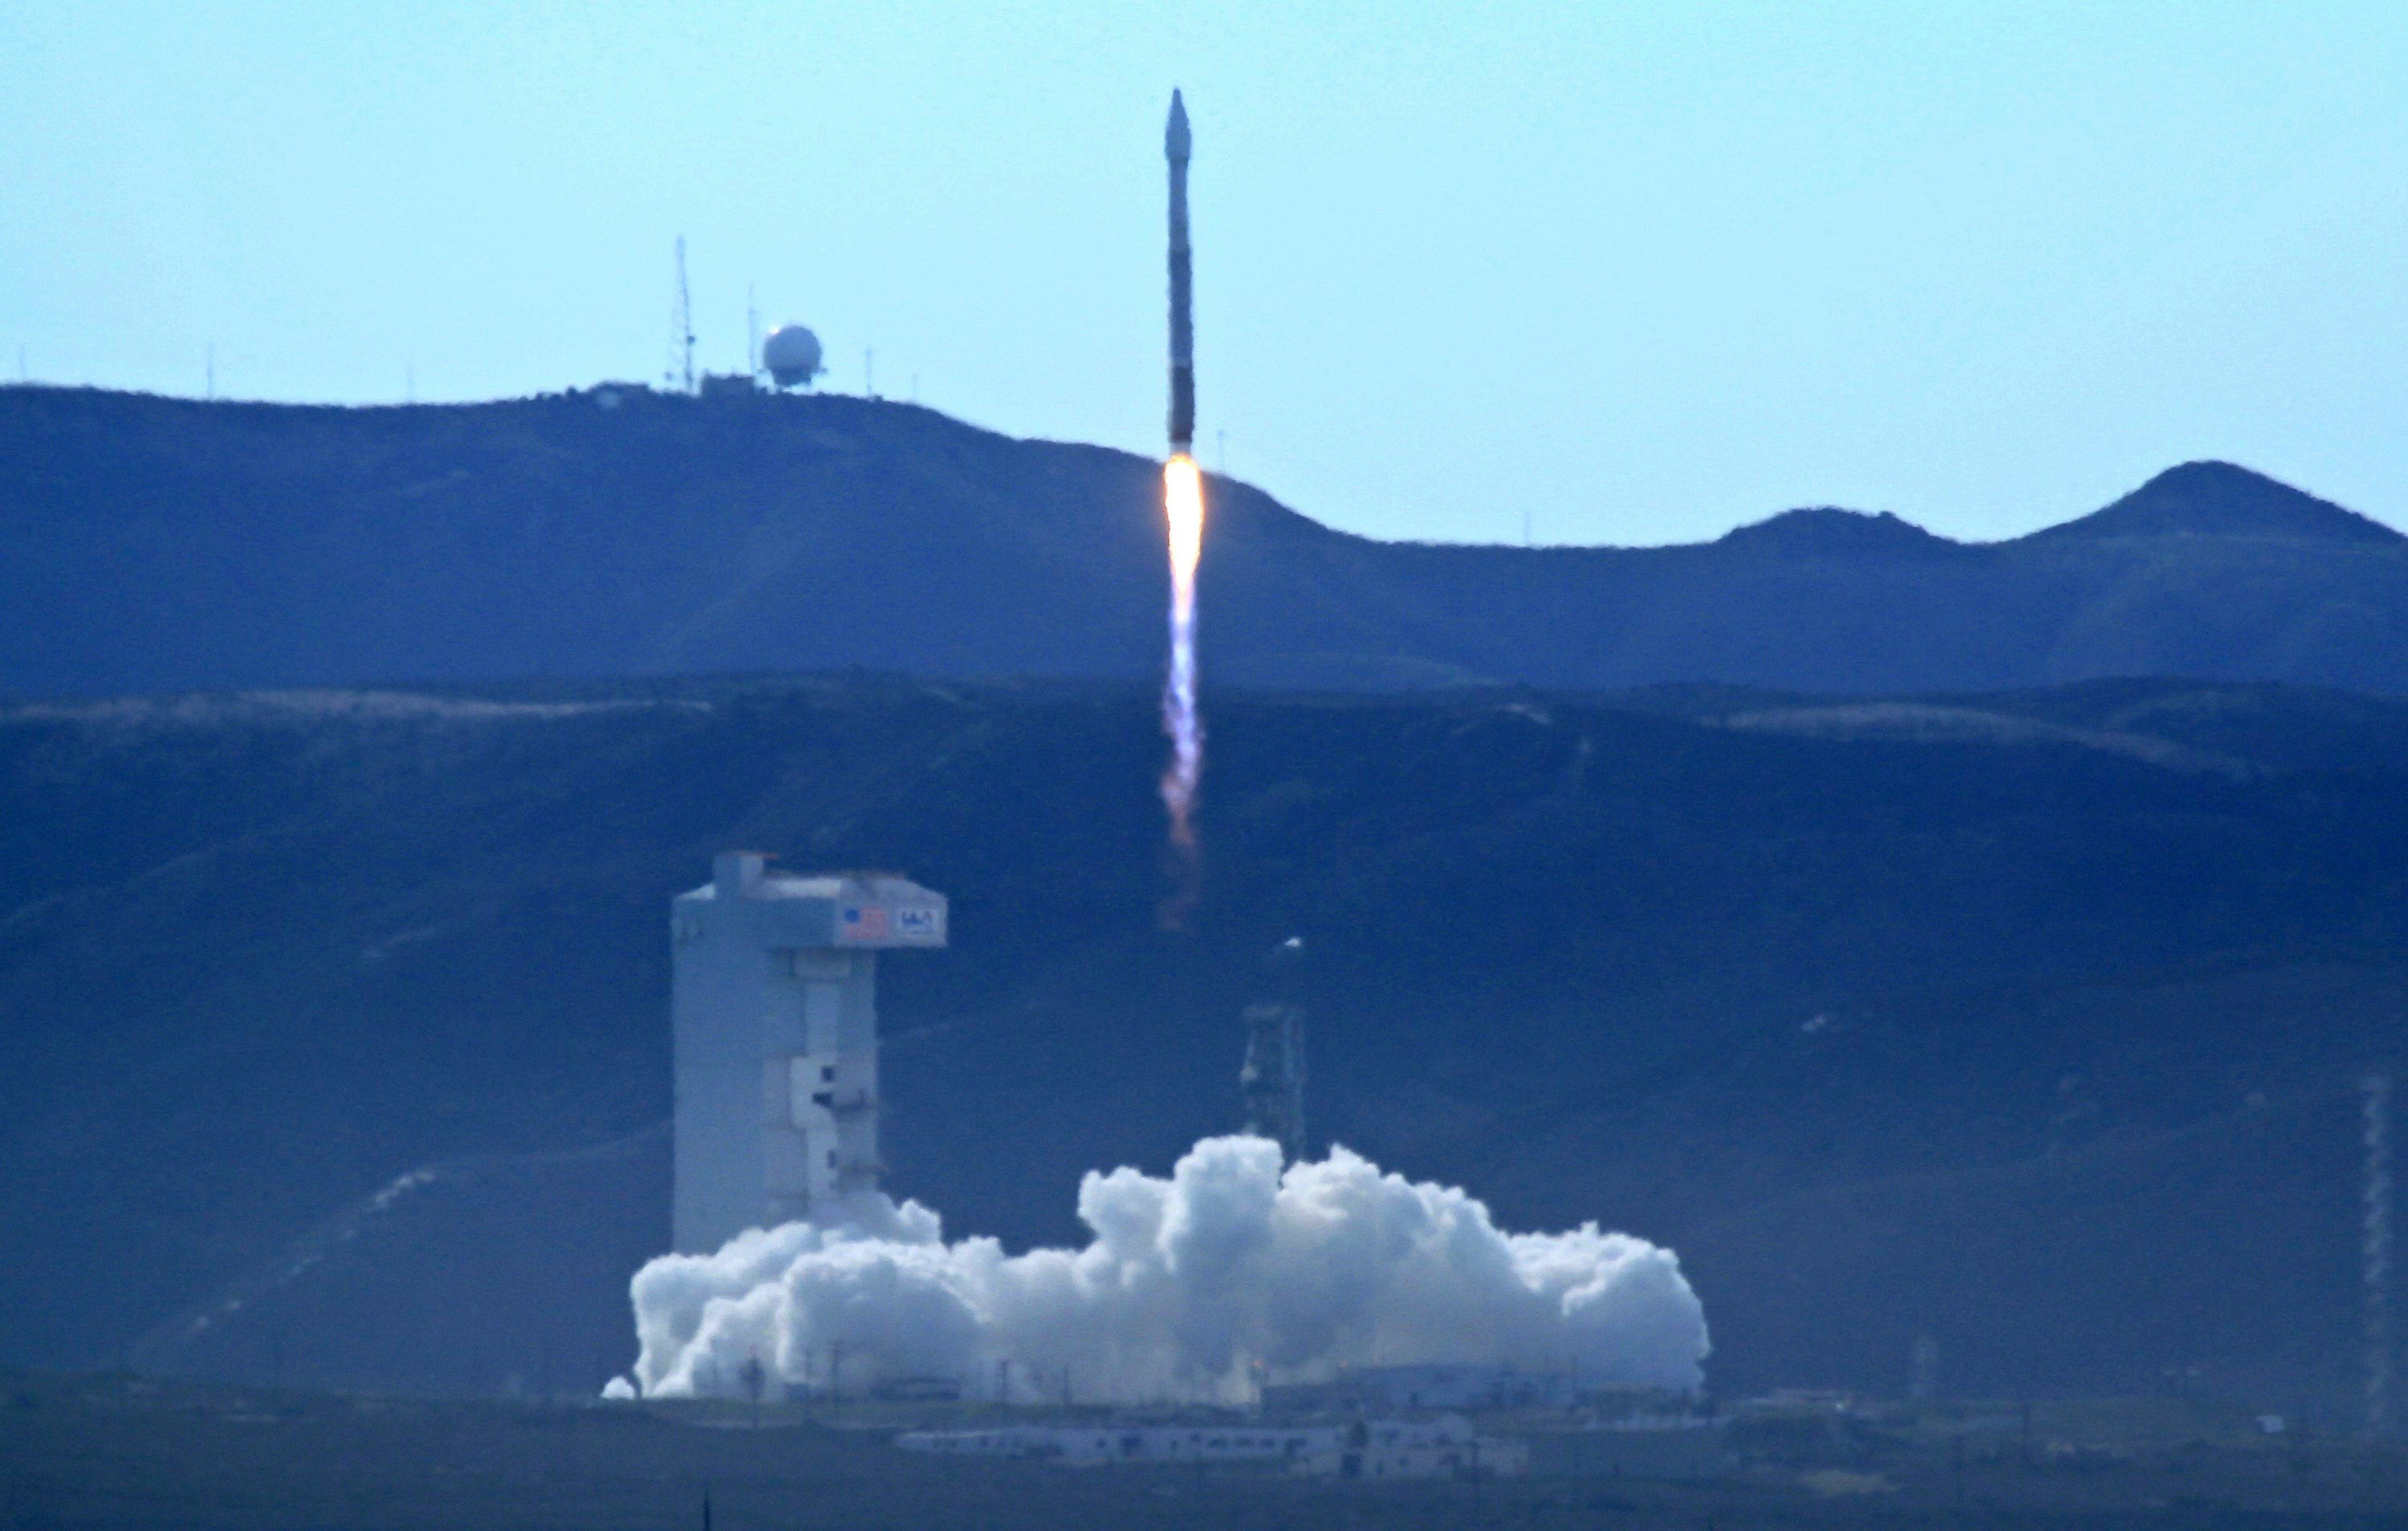 The satellite is designed to produce high-resolution images of Earth from space. (Matt Hartman via AP)